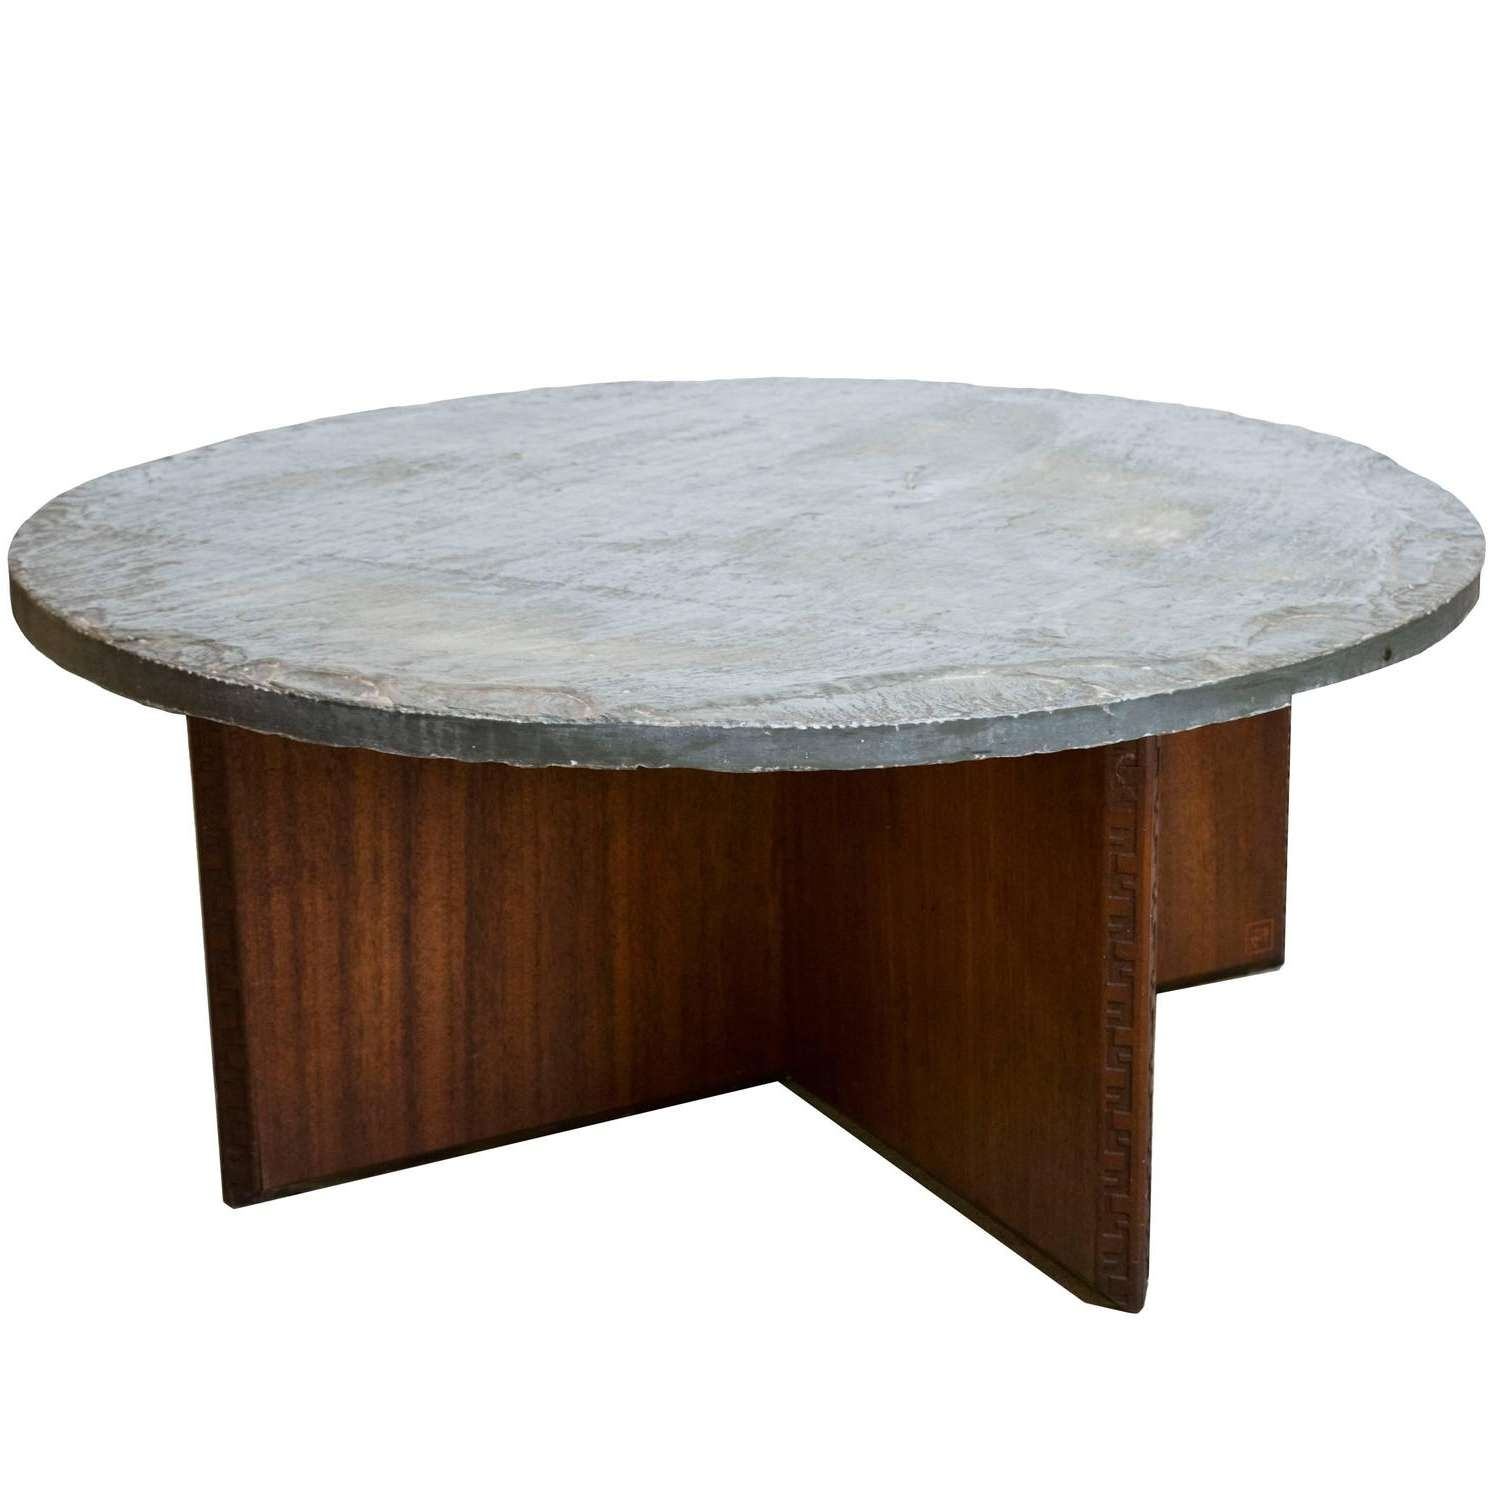 Newest Heritage Coffee Tables Throughout Frank Lloyd Wright For Henredon For Heritage Coffee Table With (View 7 of 20)